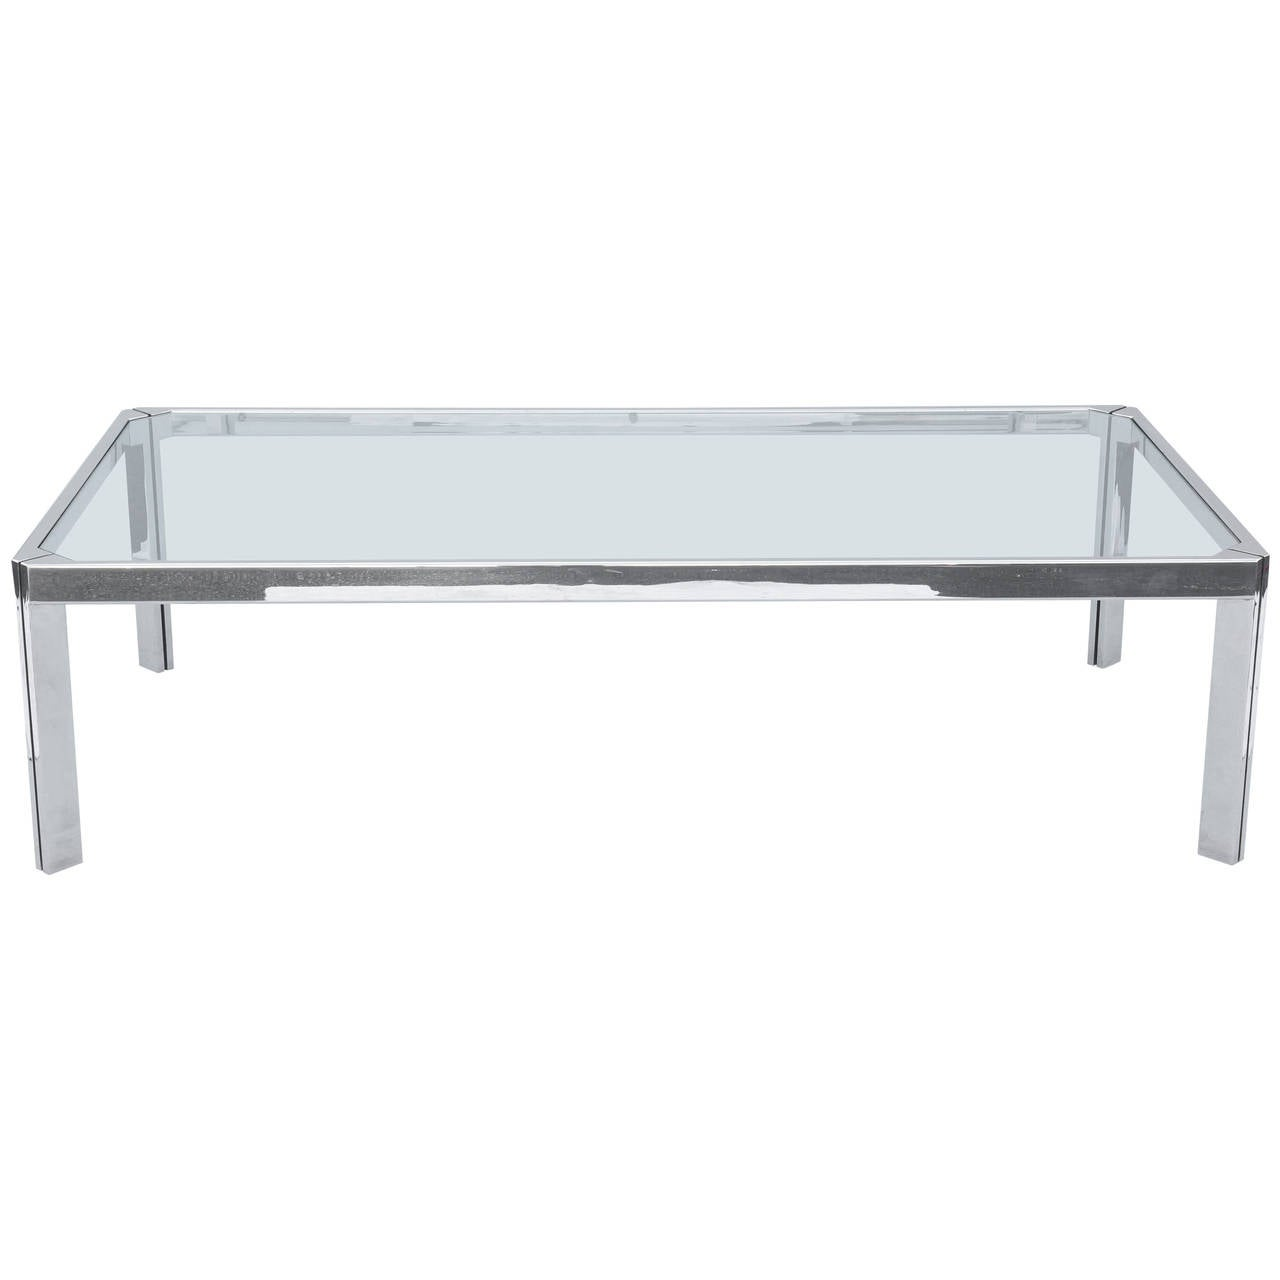 Cocktail Table With Linear Frame Of Chromed Heavy Gauge Iron For Sale At 1stdibs